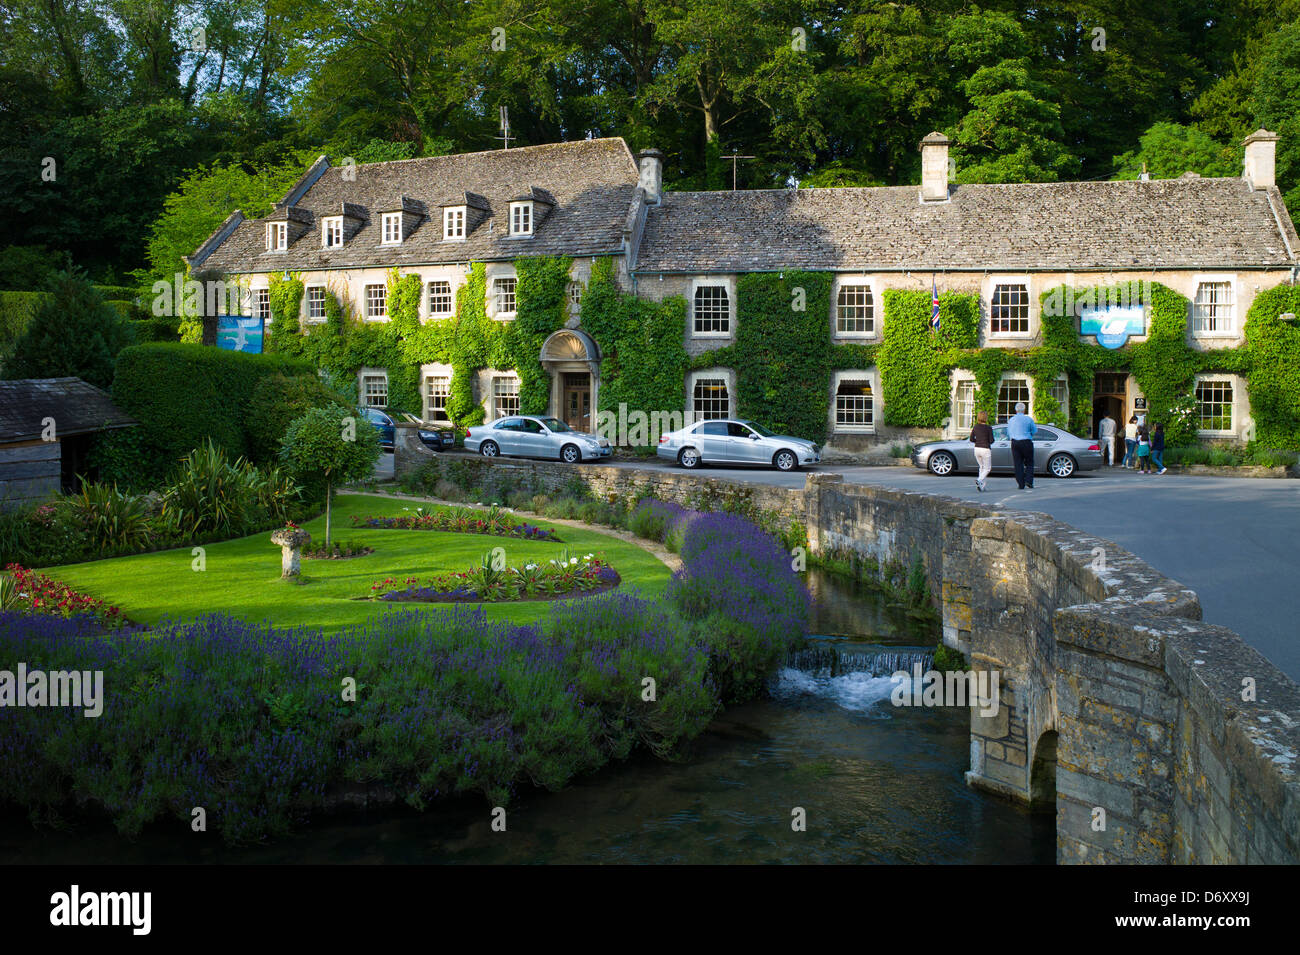 Swan Hotel And River Coln At Bibury In The Cotswolds Uk L